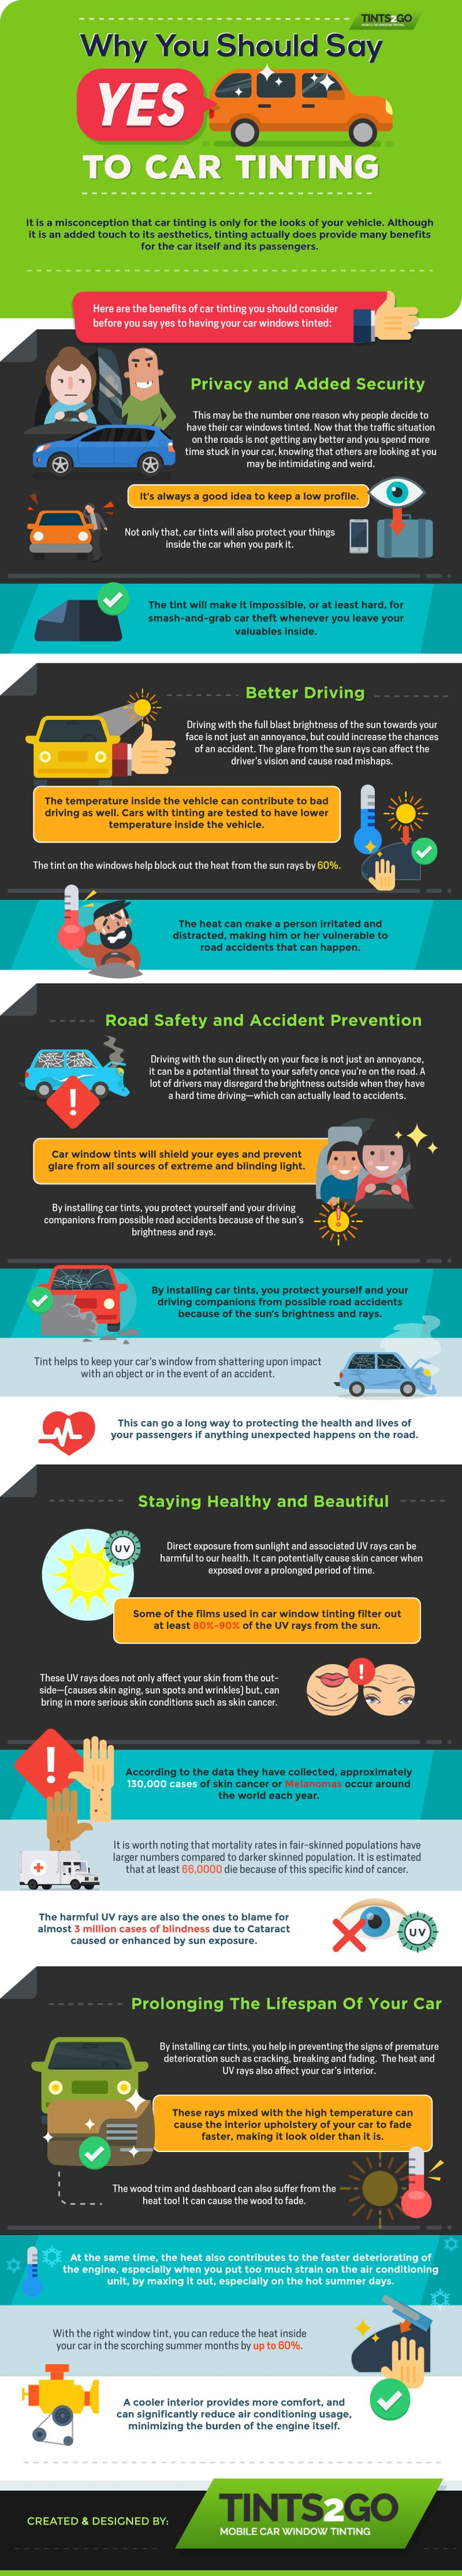 Car colour affects road safety - Car Colour And Road Safety Why You Should Say Yes To Car Tinting Infographic Cartint